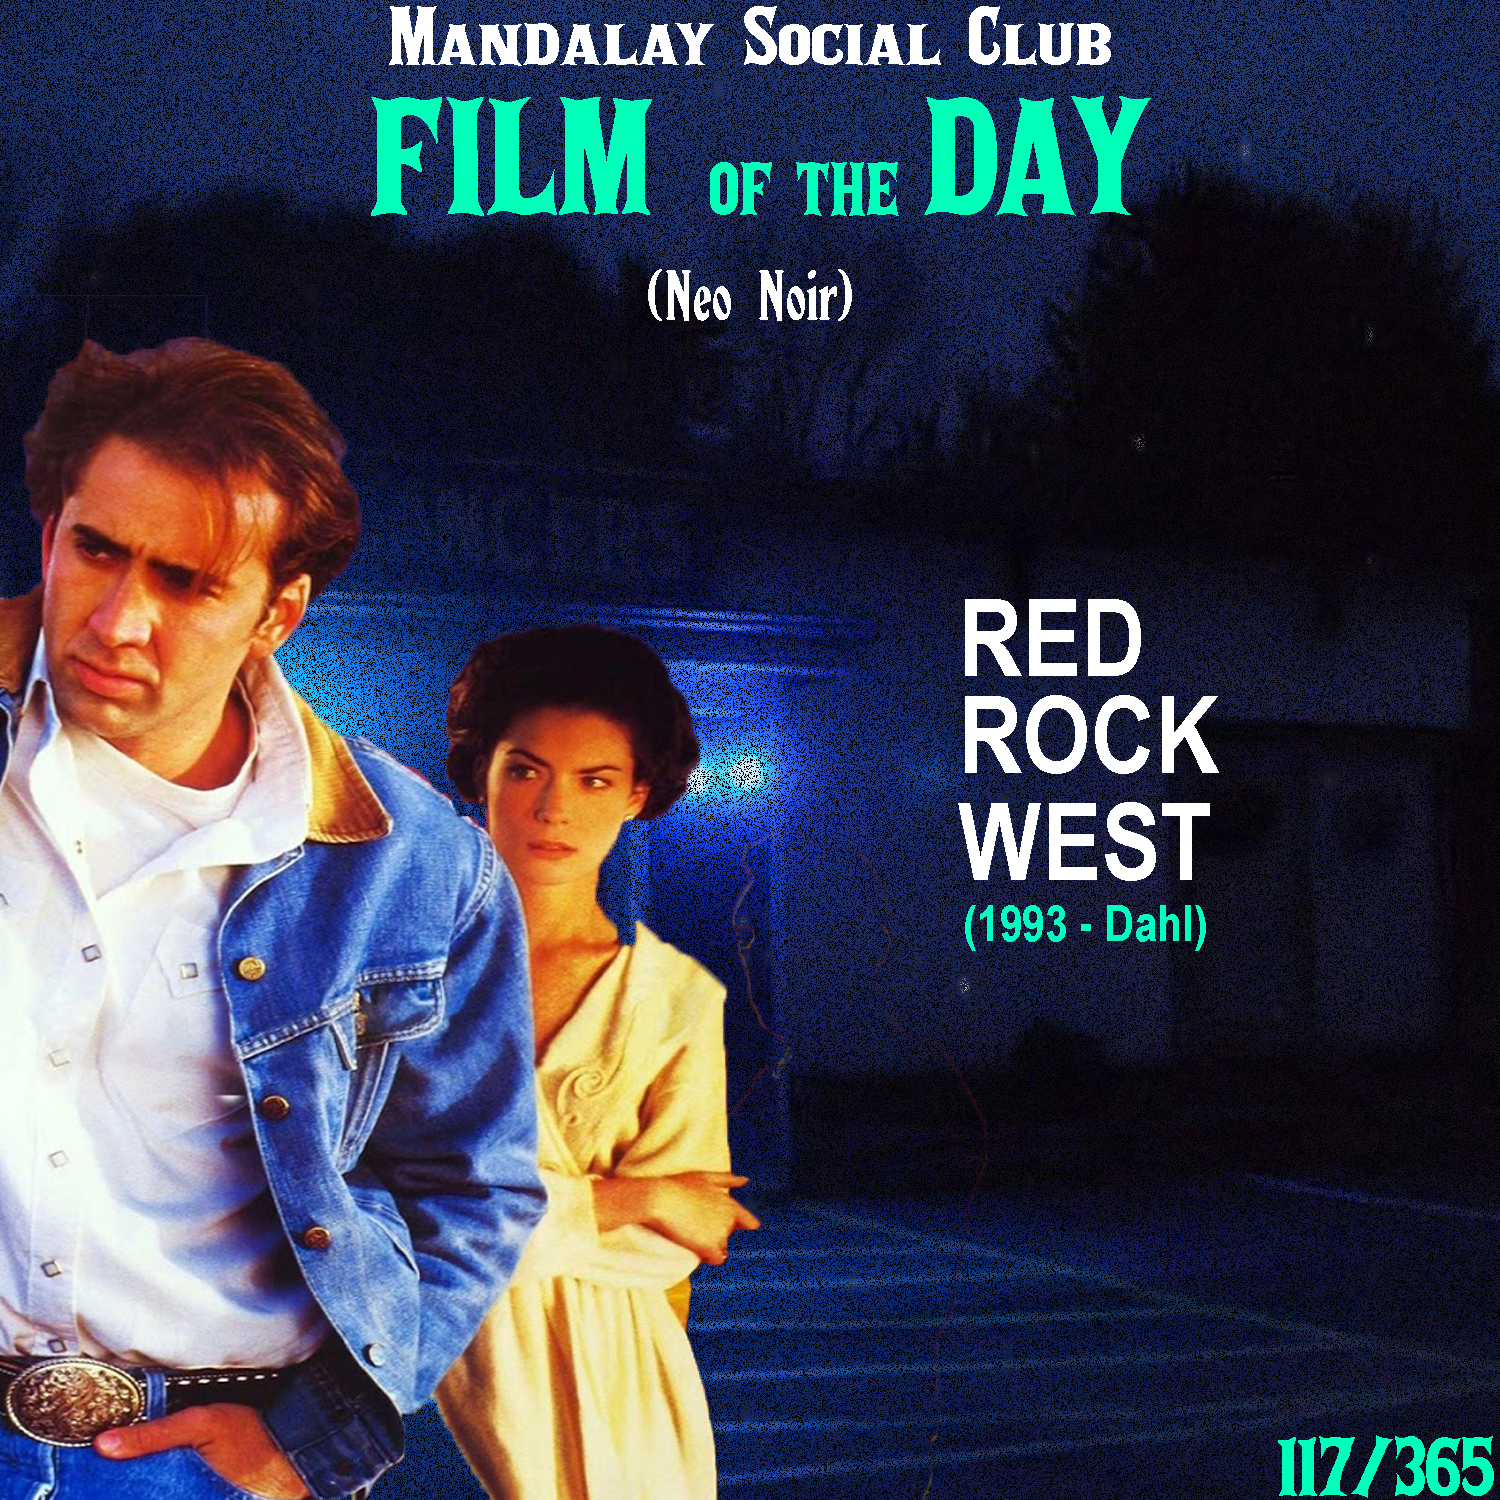 RED ROCK WEST     (dir. John Dahl)   John Dahl, a director with a real fetish for the Neo-noir genre, takes the two last films we talked about it and almost combined them to create this unique little 90's noir.   Red Rock West  stars three David Lynch alum with Nicolas Cage, Dennis Hopper, and Lara Flynn Boyle. Cage stars as a loner named Michael who stumbles through small town Wyoming. He's in need for money and unknowingly accepts $5,000 to kill a bar owner's wife. He takes it, but doesn't go through with it and the real hitman, played by Dennis Hopper in a toned down Frank Booth-esque role, wants his money.  Dahl takes a lot of influence from Blood Simple in putting this noir in a desolate, western environment and presents us with some idiosyncratic characters like Lynch. In 1994, Dahl made his most critically acclaimed film with  The Last Seduction , but there's just something about the unique setting and quirky group of characters that give this film a unique place in the Neo-noir world.    4/5     WATCH:  Putlocker, iTunes